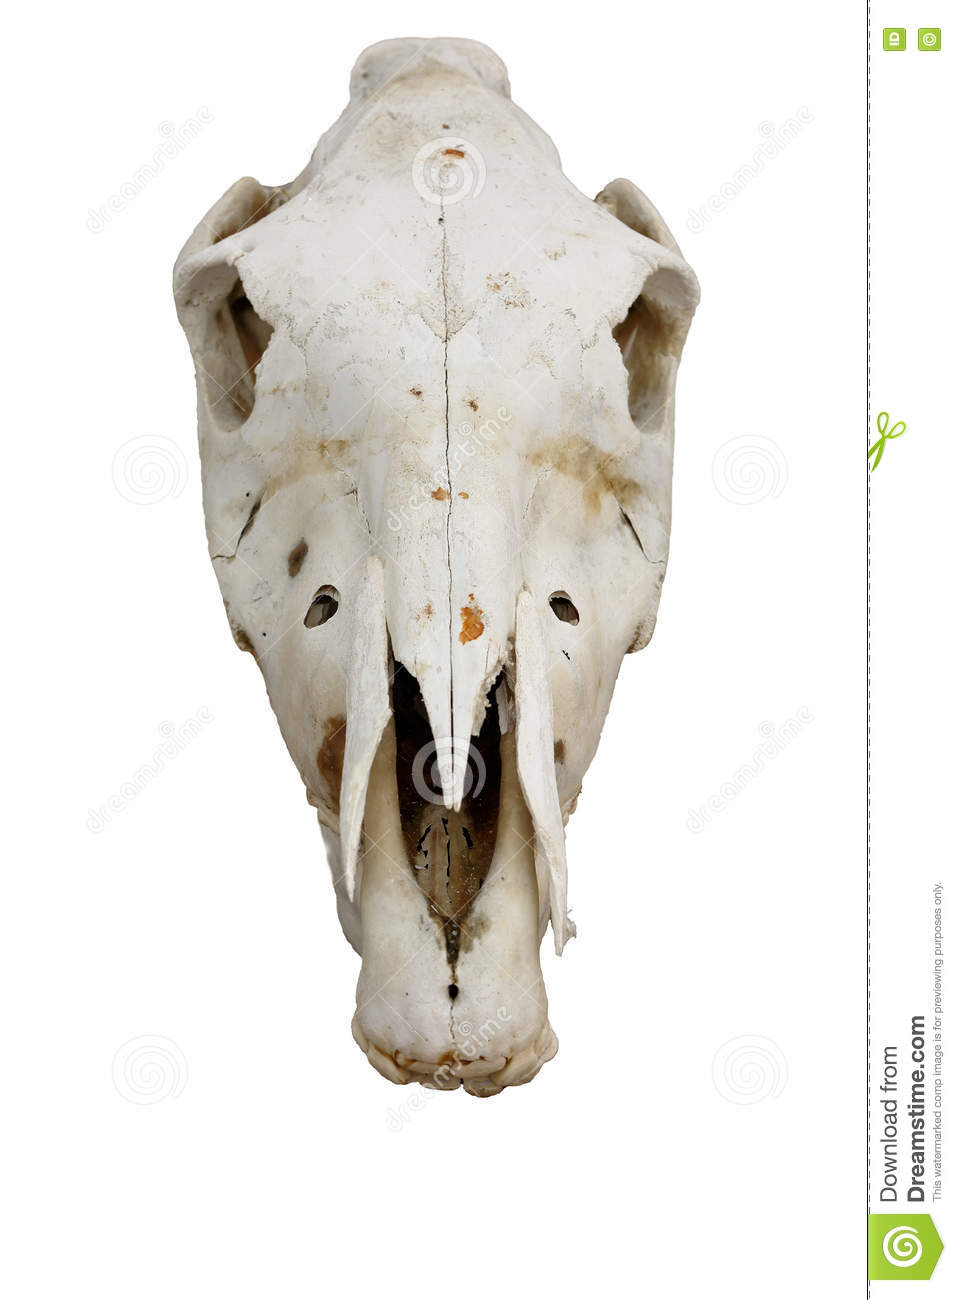 Horse Skull Stock Photo Image Of Isolated Physiology 74713462